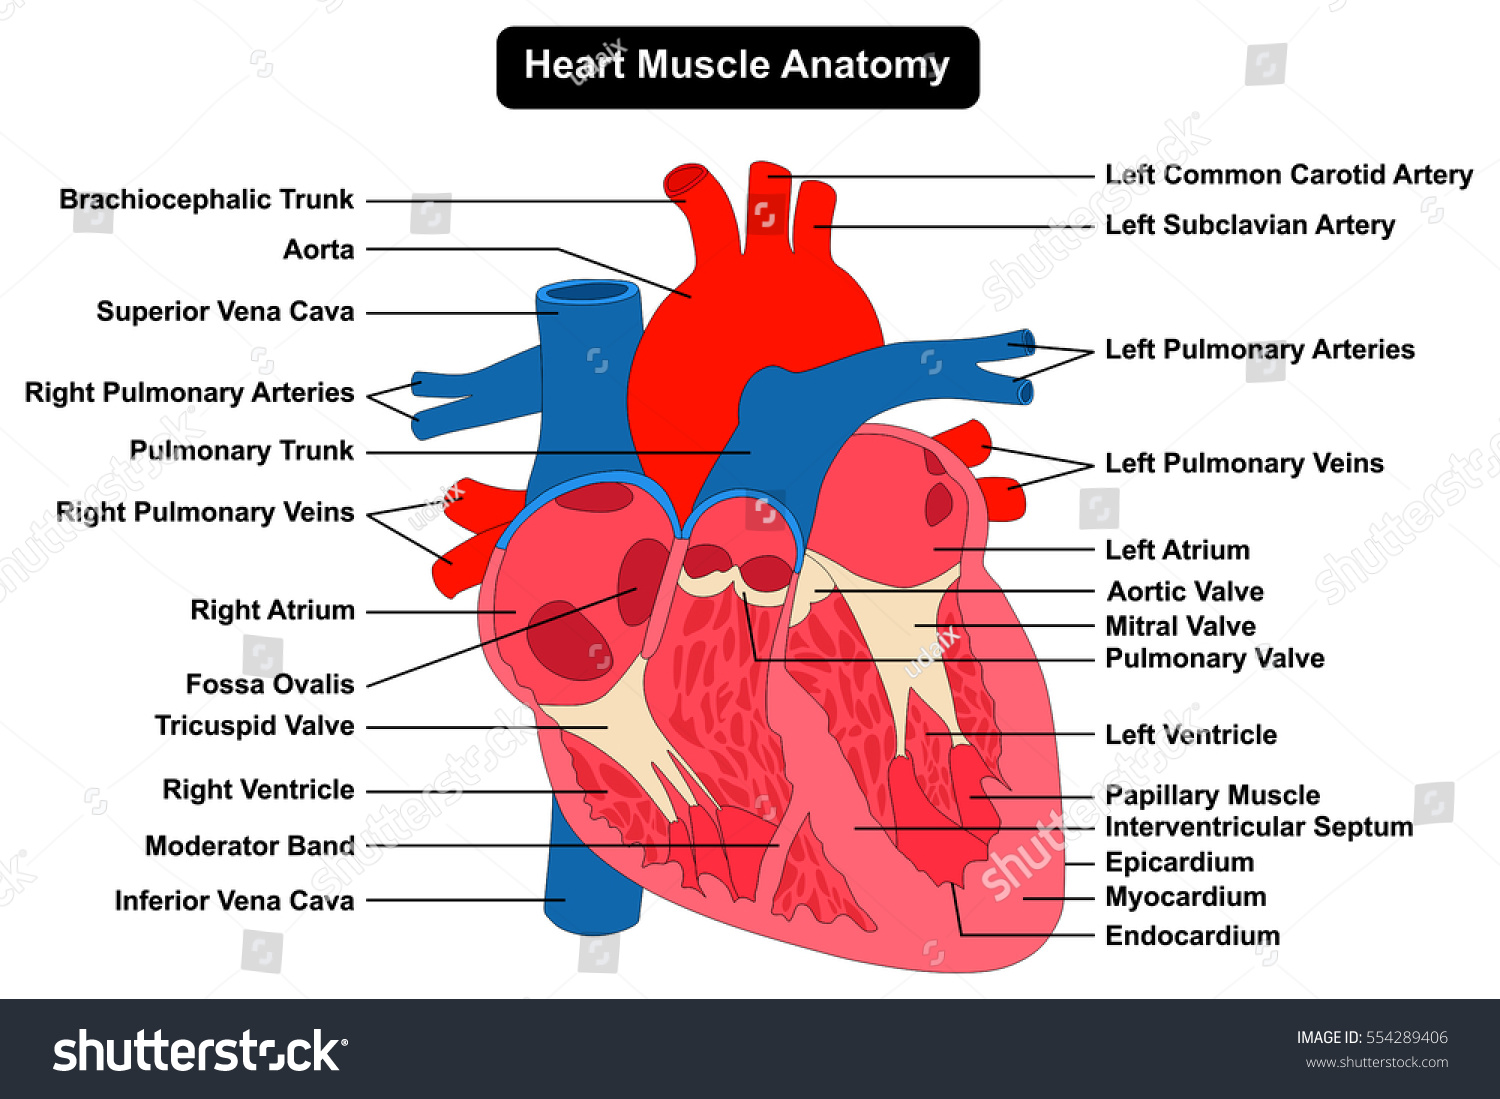 inner heart diagram simple wiring for trailer lights human muscle structure anatomy infographic stock